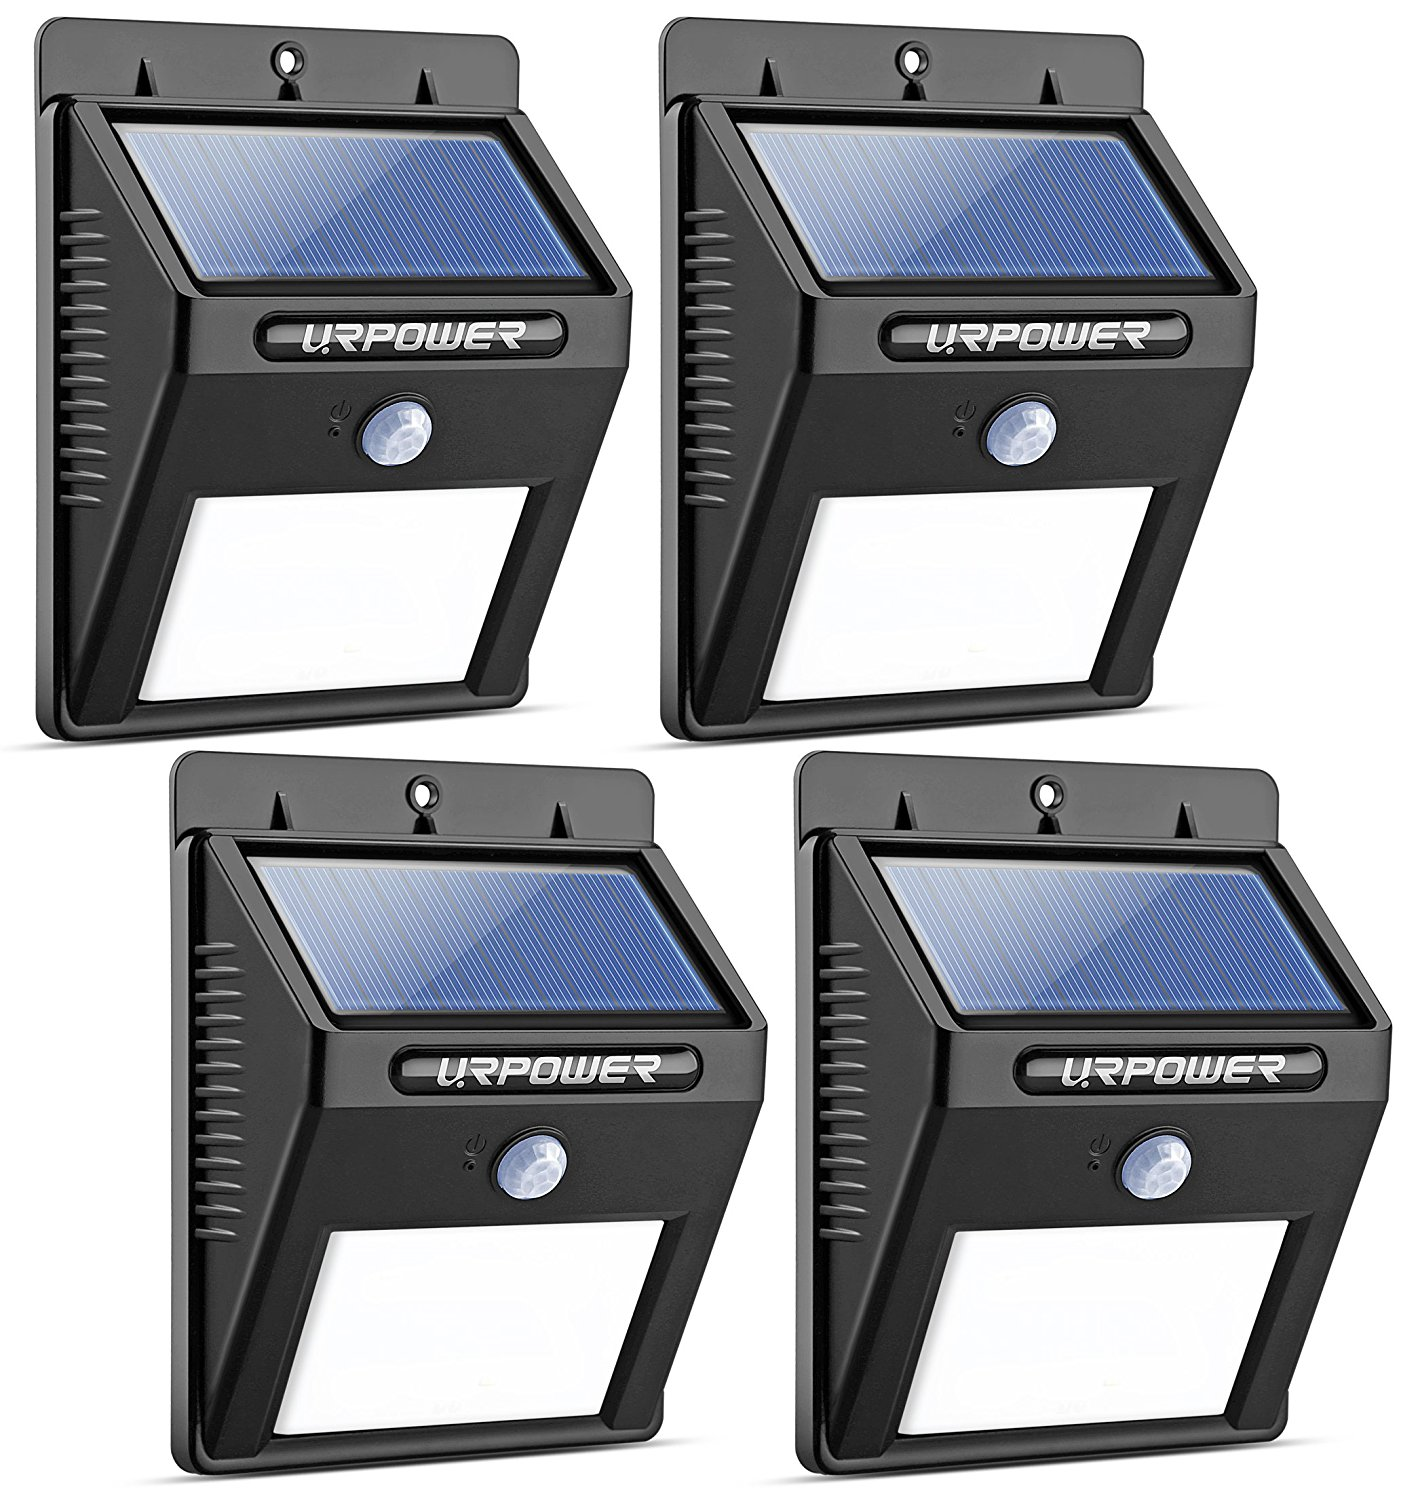 Best Solar Outdoor Lights Ledwatcher Sunny Light Gardensolar Yard Powered Lighting Urpower